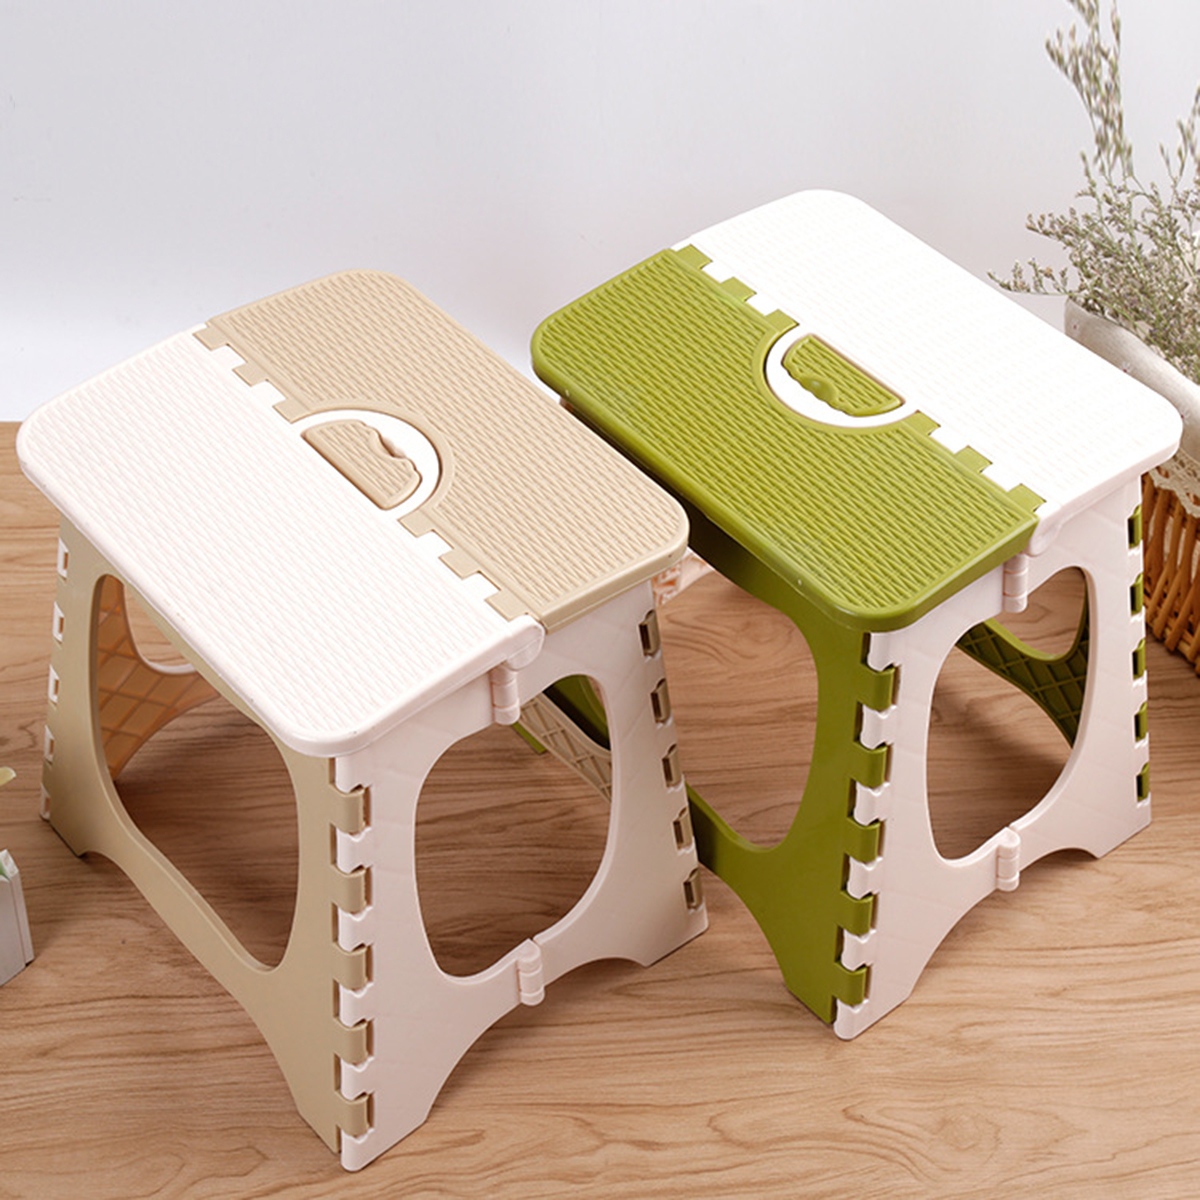 Large Size Plastic Folding Stool Bathroom Small Bench Toilet Portable Folding Chairs стул для рыбалки gdt portable folding chairs